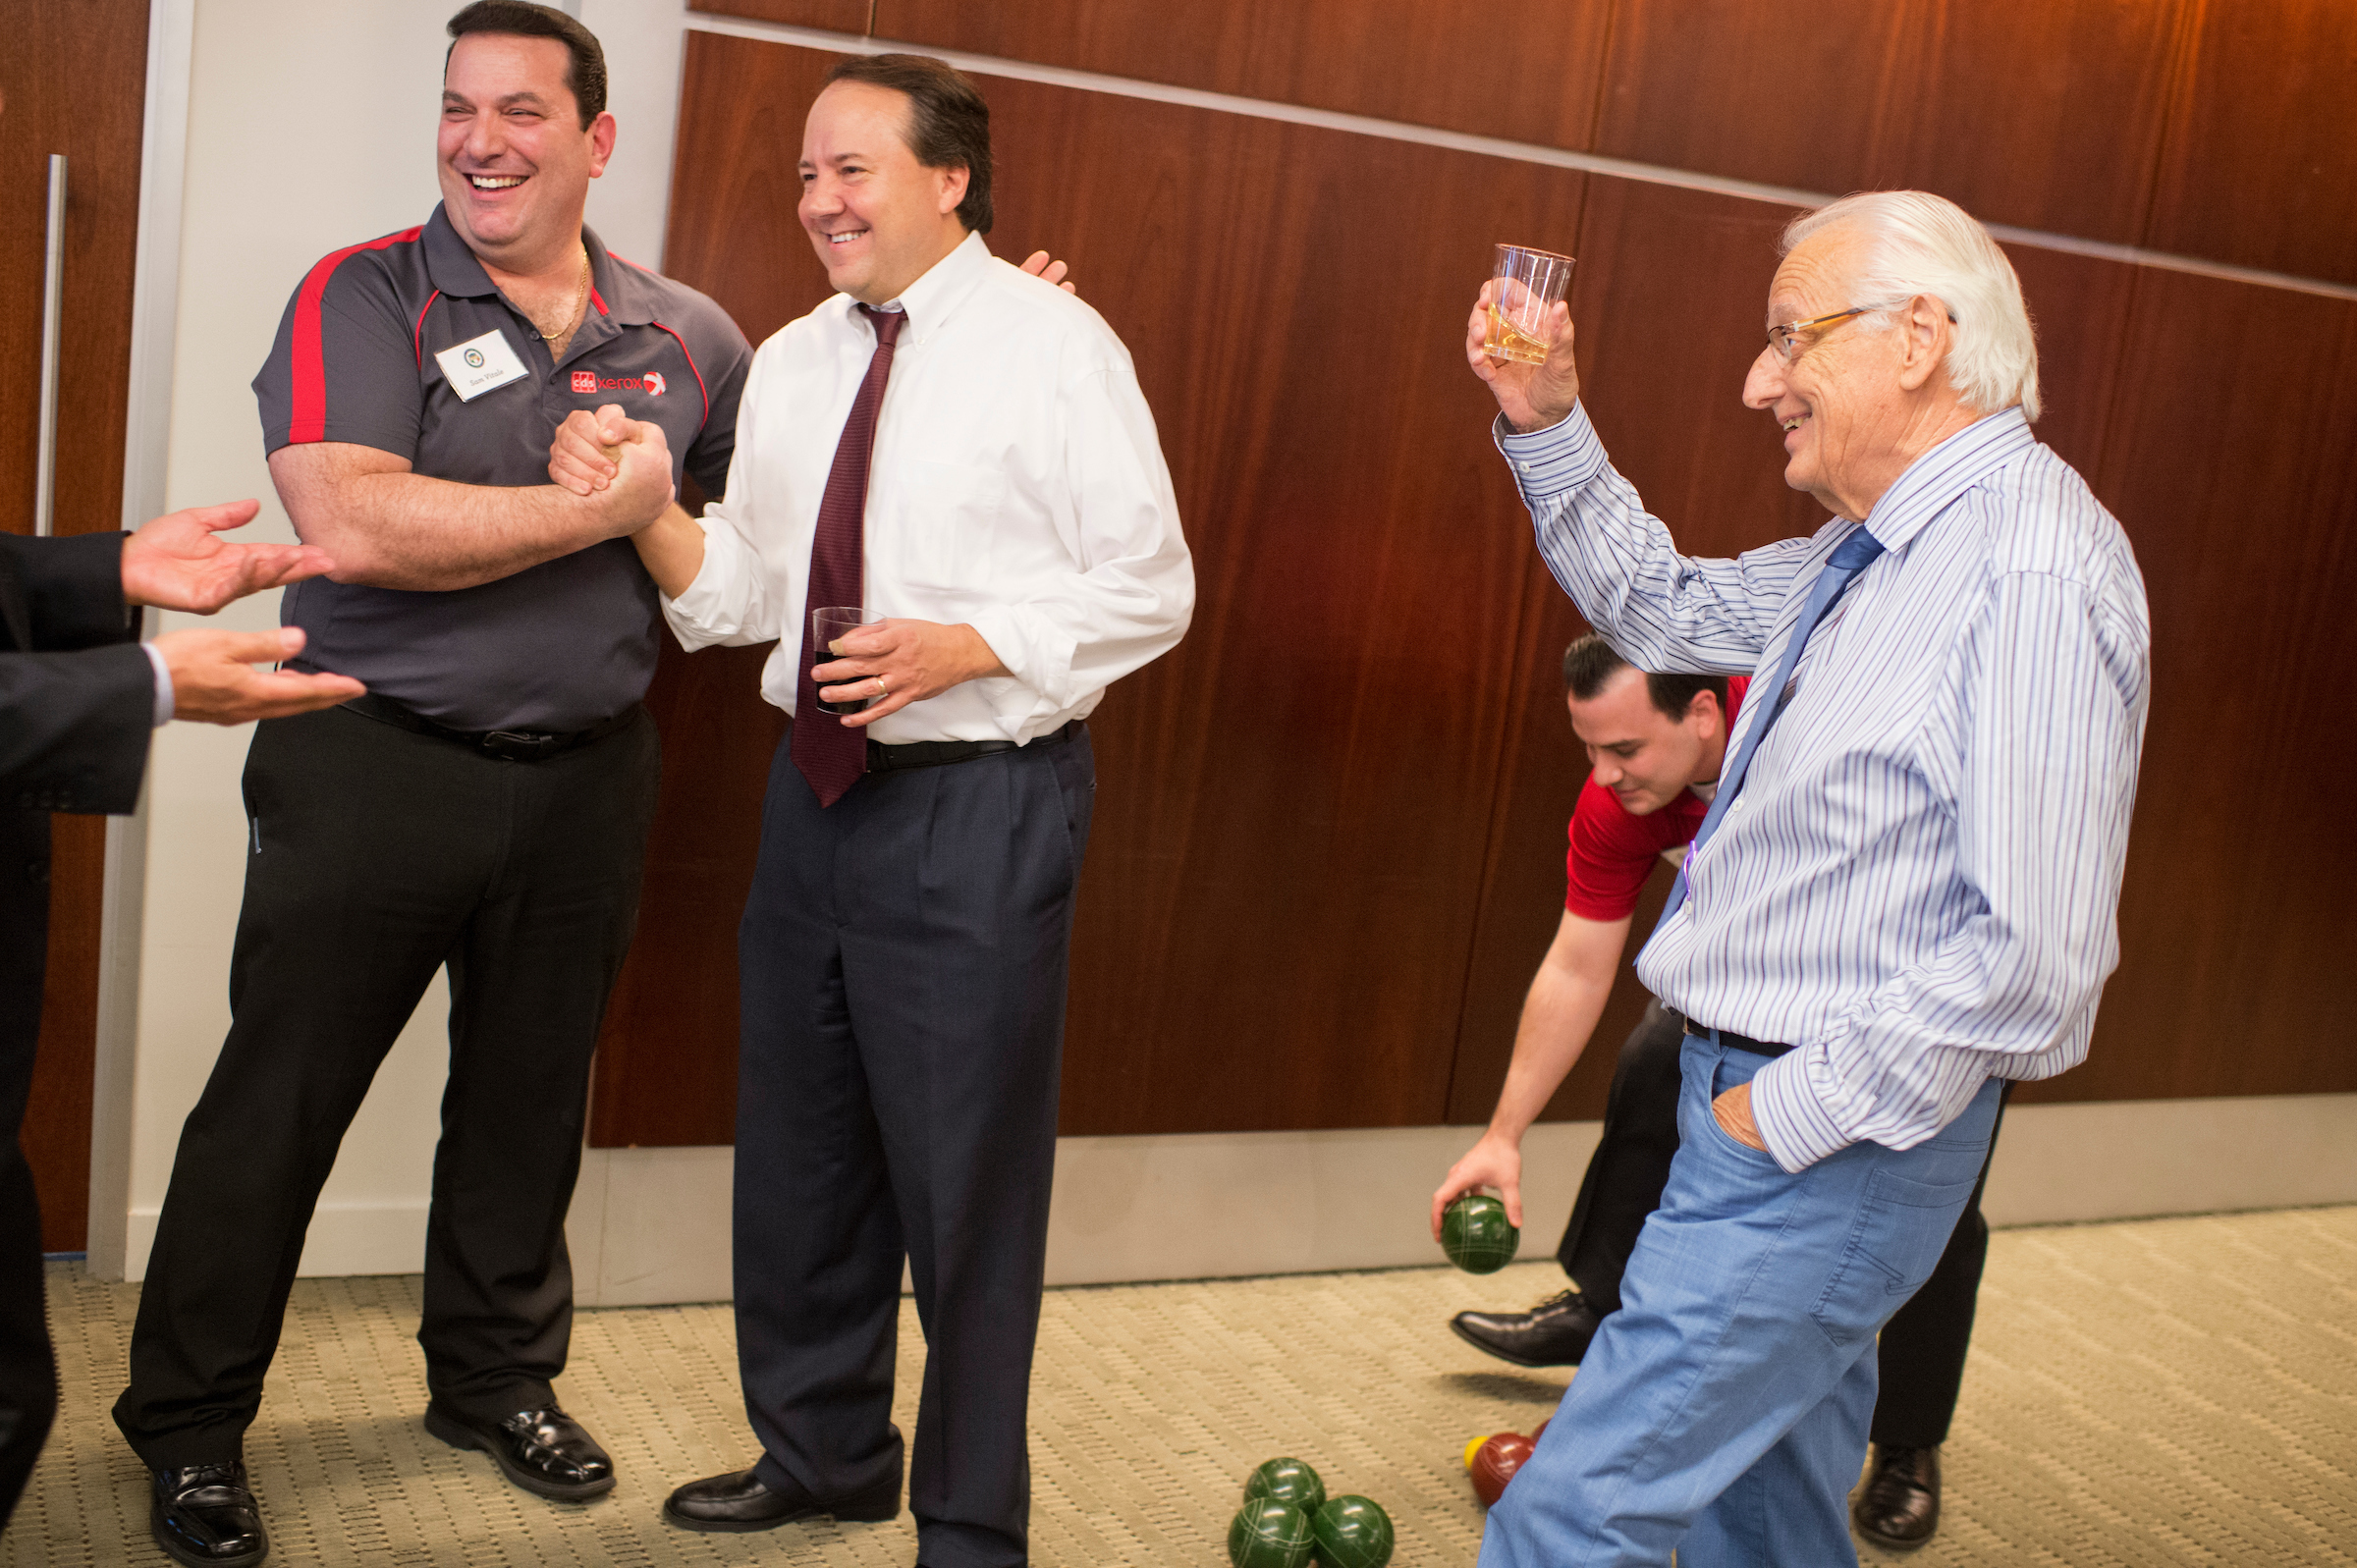 UNITED STATES - MAY 23: From left, Sam Vitale of Xerox, Rep. Pat Tiberi, R-Ohio, Jon Vitale, and Rep. Bill Pascrell, D-N.J., conclude a match where the Congress team was victorious during the Fourth Annual Congressional Bocce Ball Tournament sponsored by the National Italian American Foundation (NIAF), in the offices of Venable LLP law firm, May 23, 2016. Play was moved inside because of rain. (Photo By Tom Williams/CQ Roll Call)